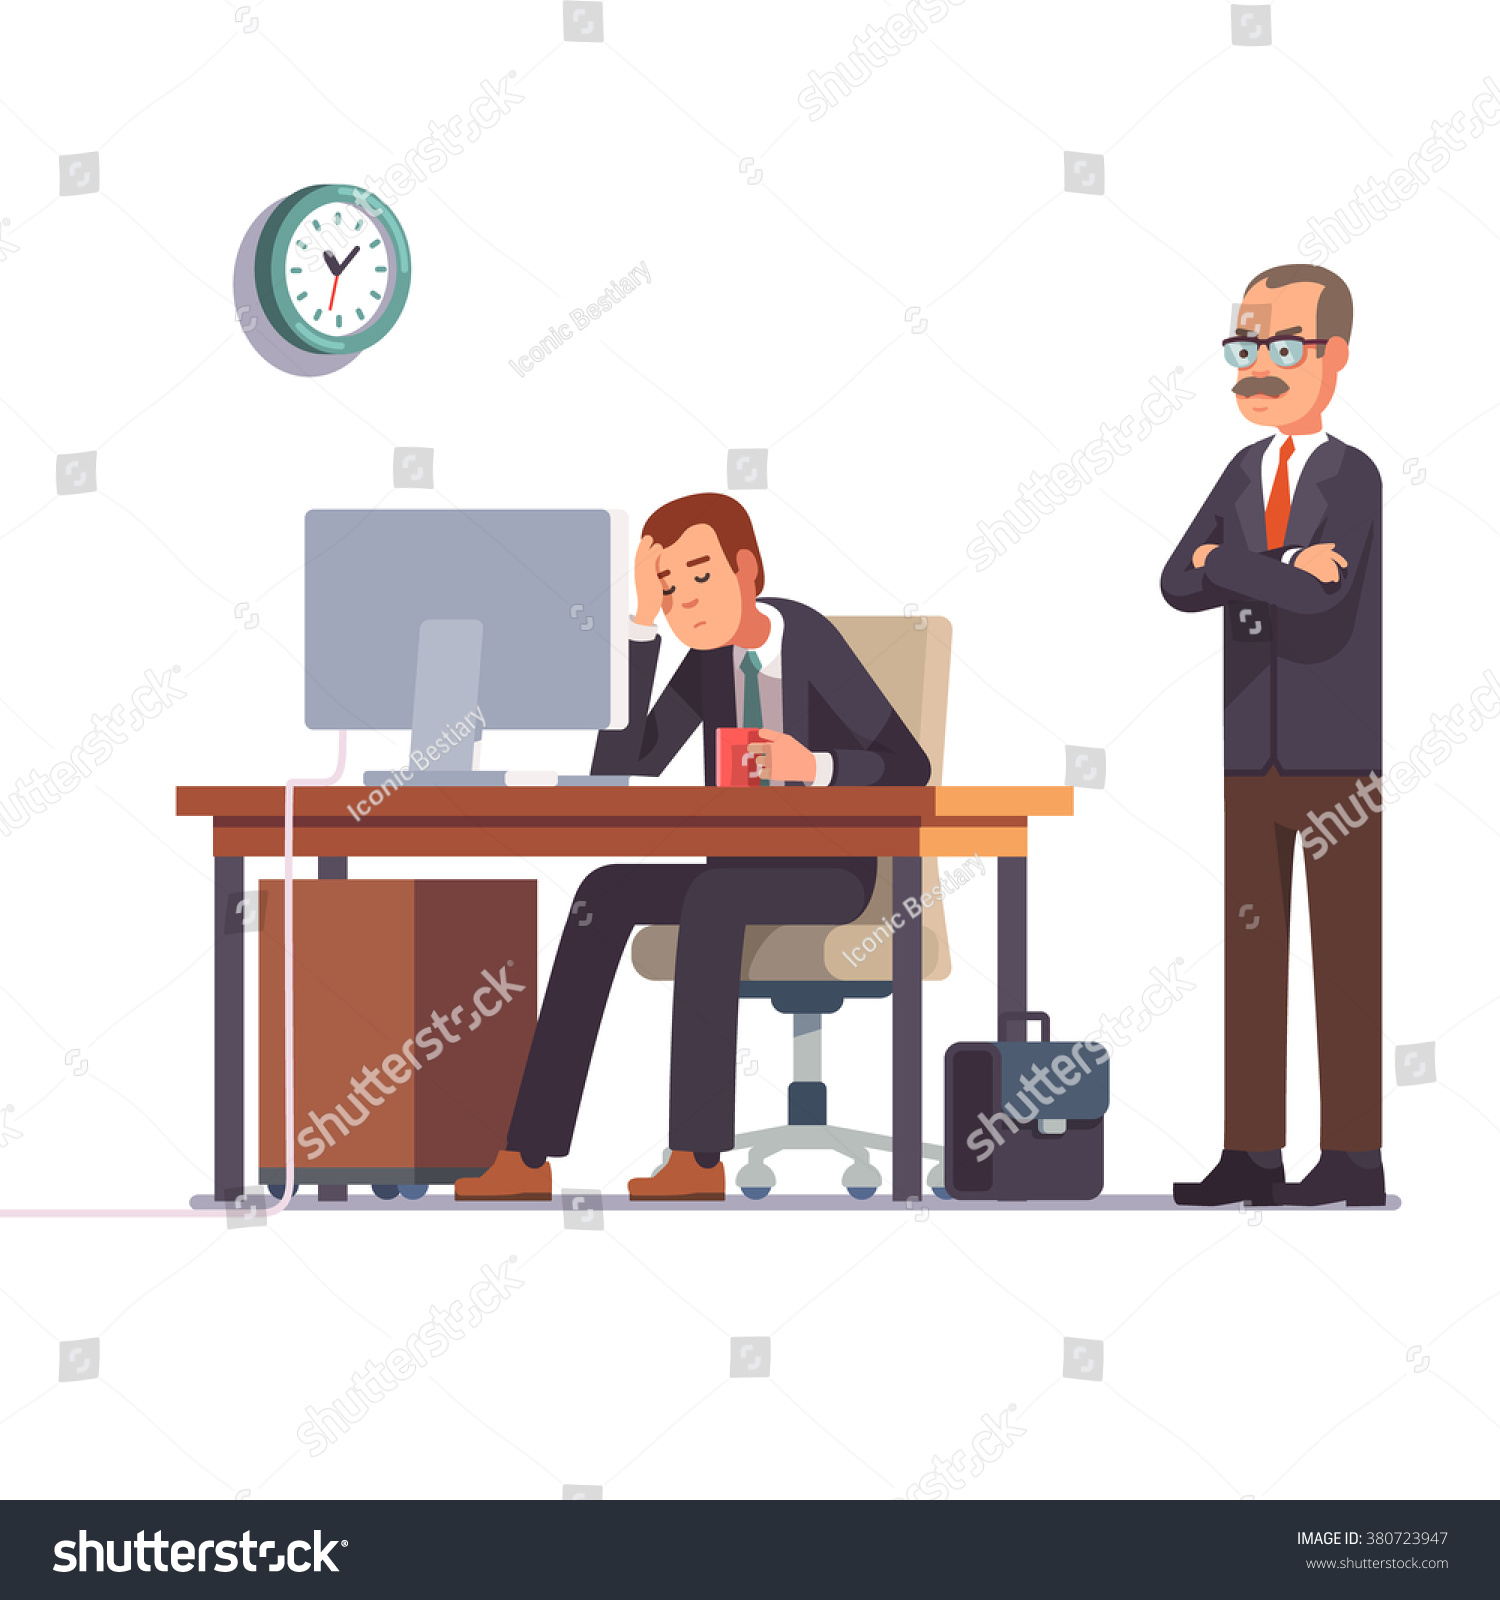 boss watching over shoulder sleeping work stock vector roller shutter computer desk